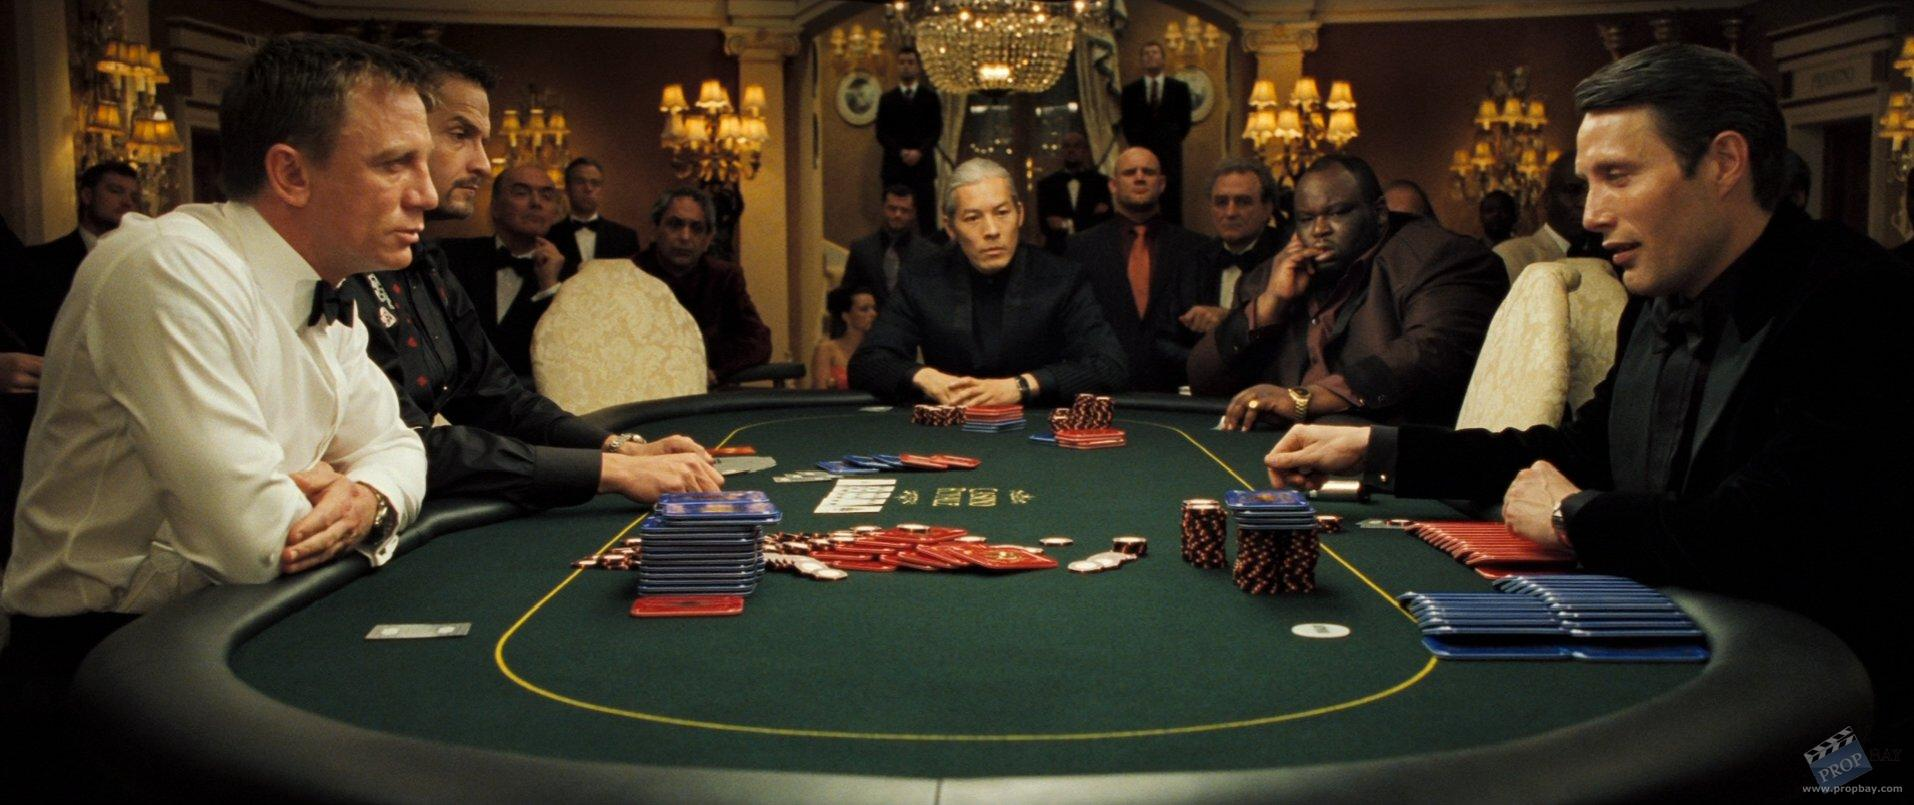 casino royale poker game